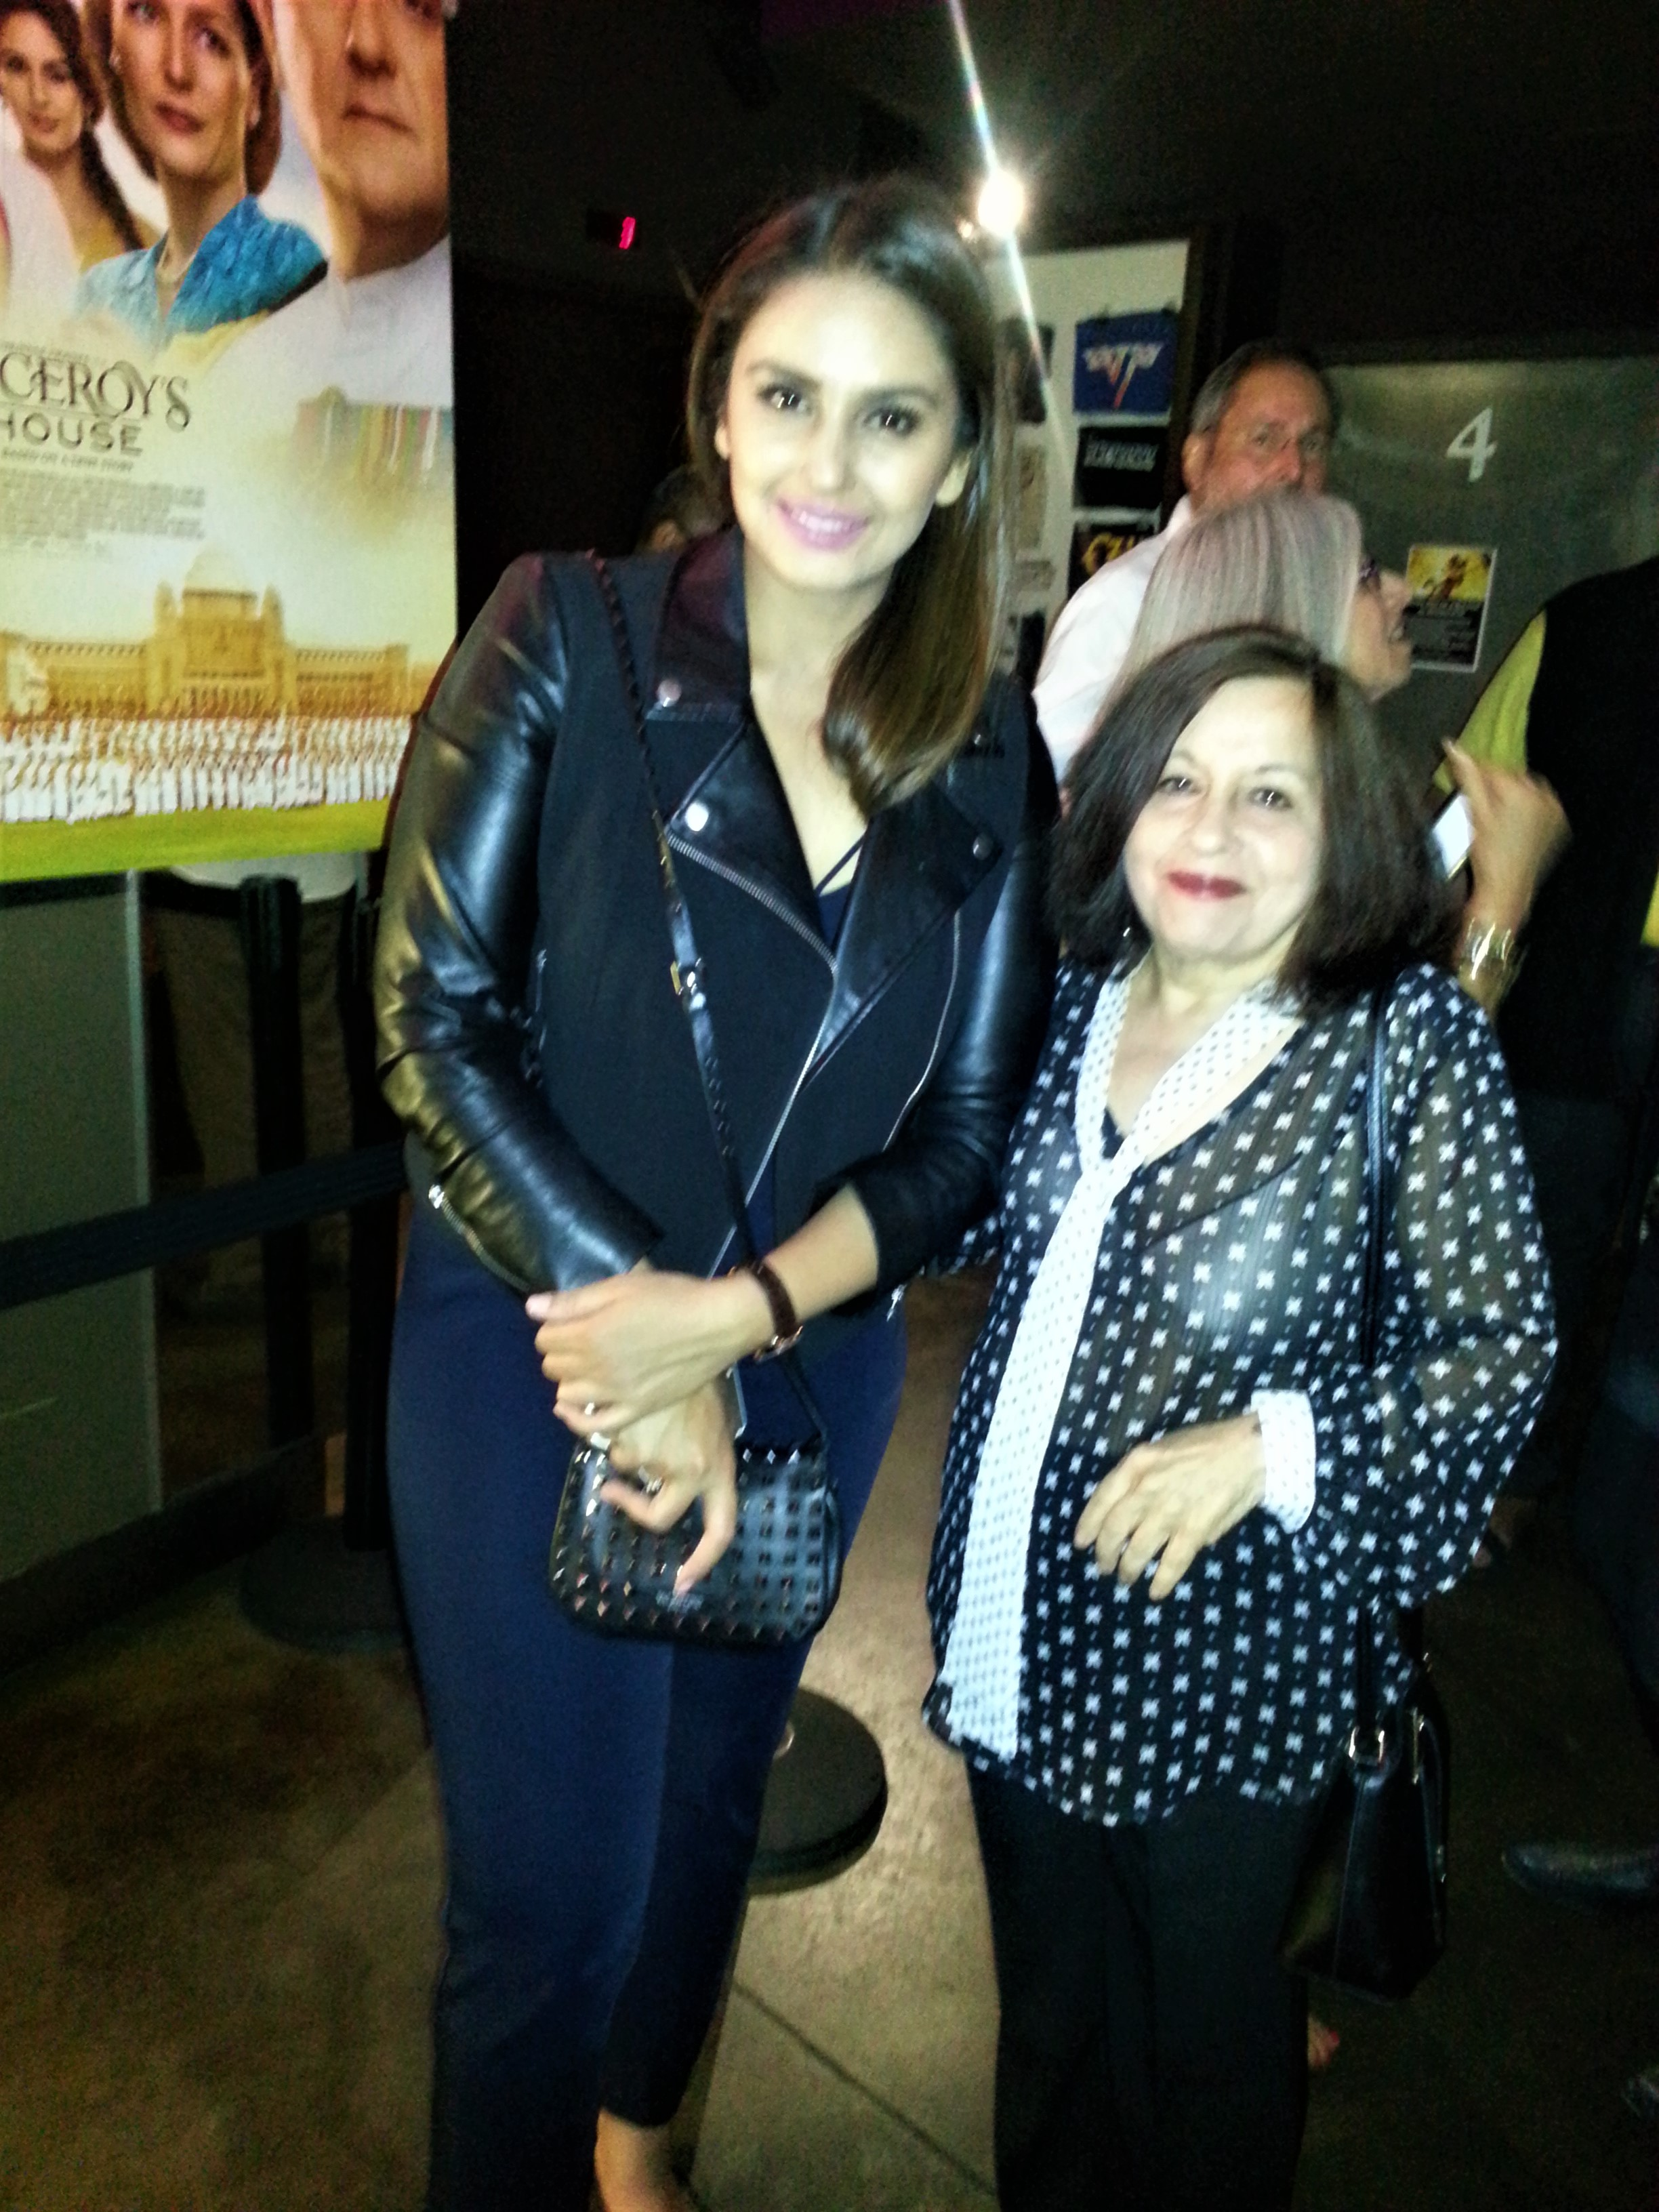 At the Viceroy's House afterparty: Huma Qureshi & Lavina Melwani